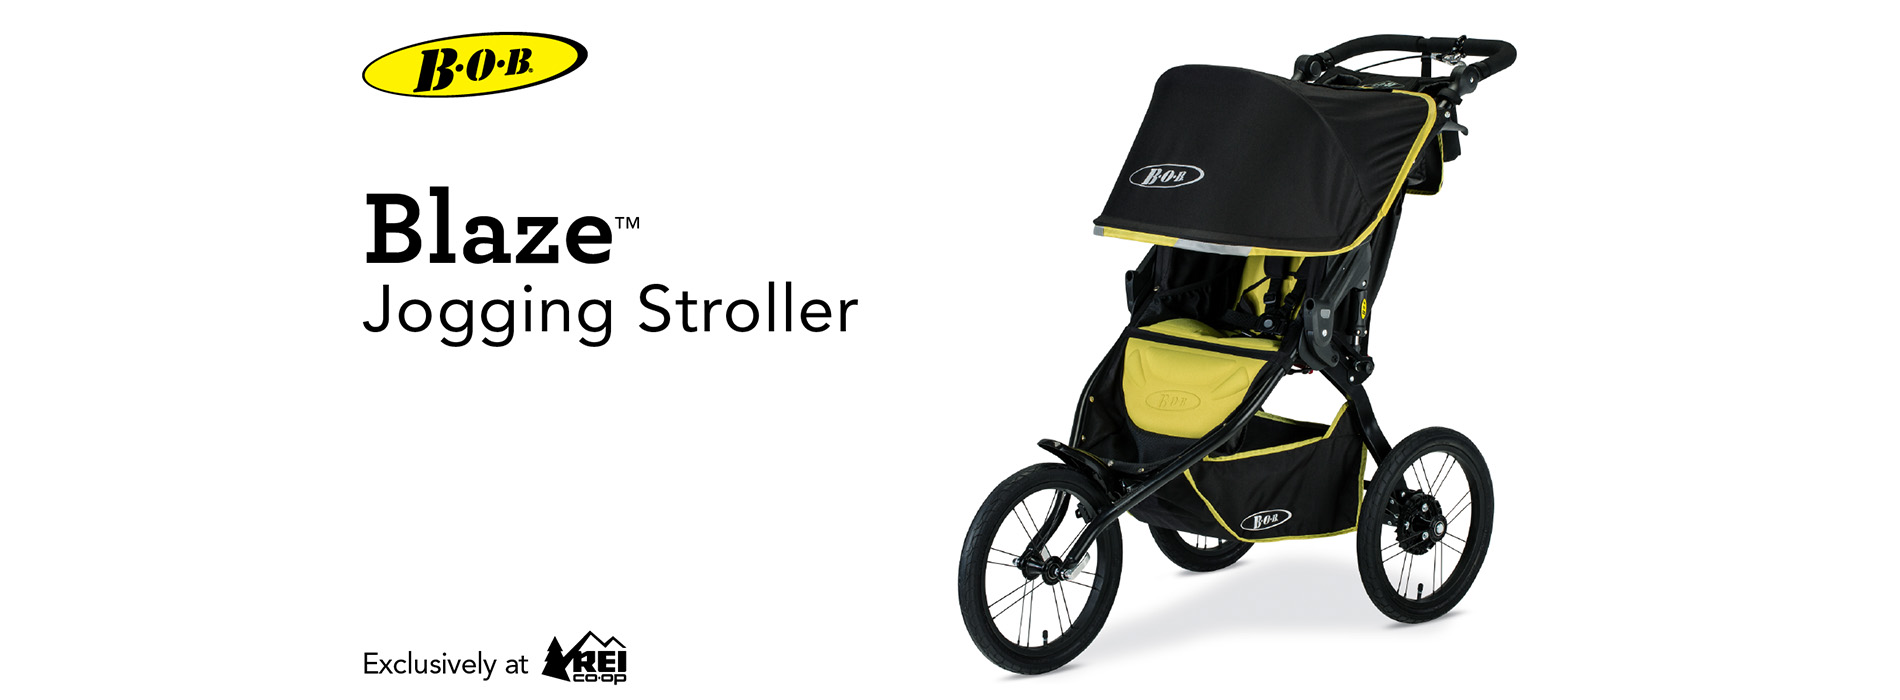 Black and yellow Blaze Jogging Stroller